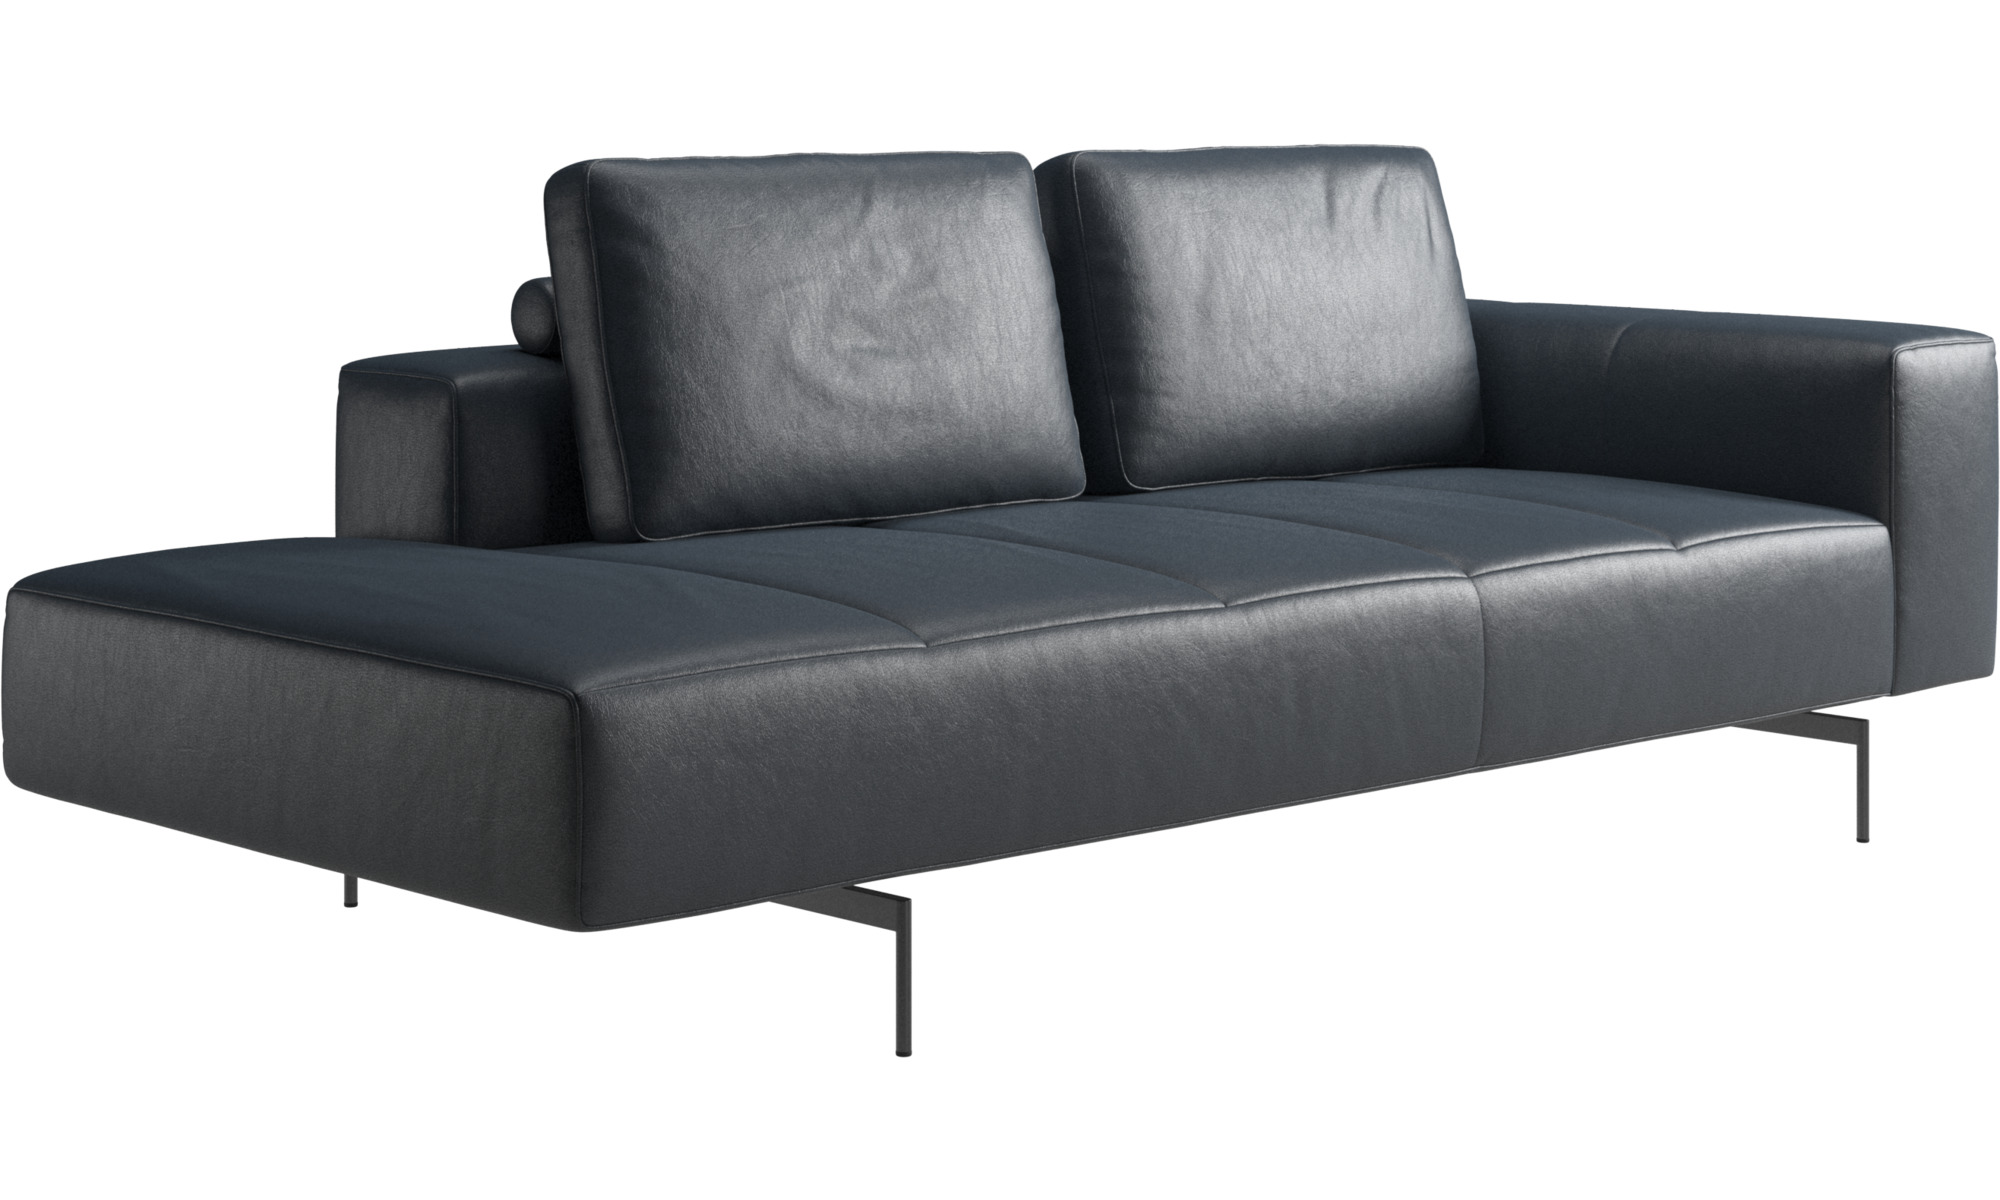 Amsterdam Resting Module For Sofa